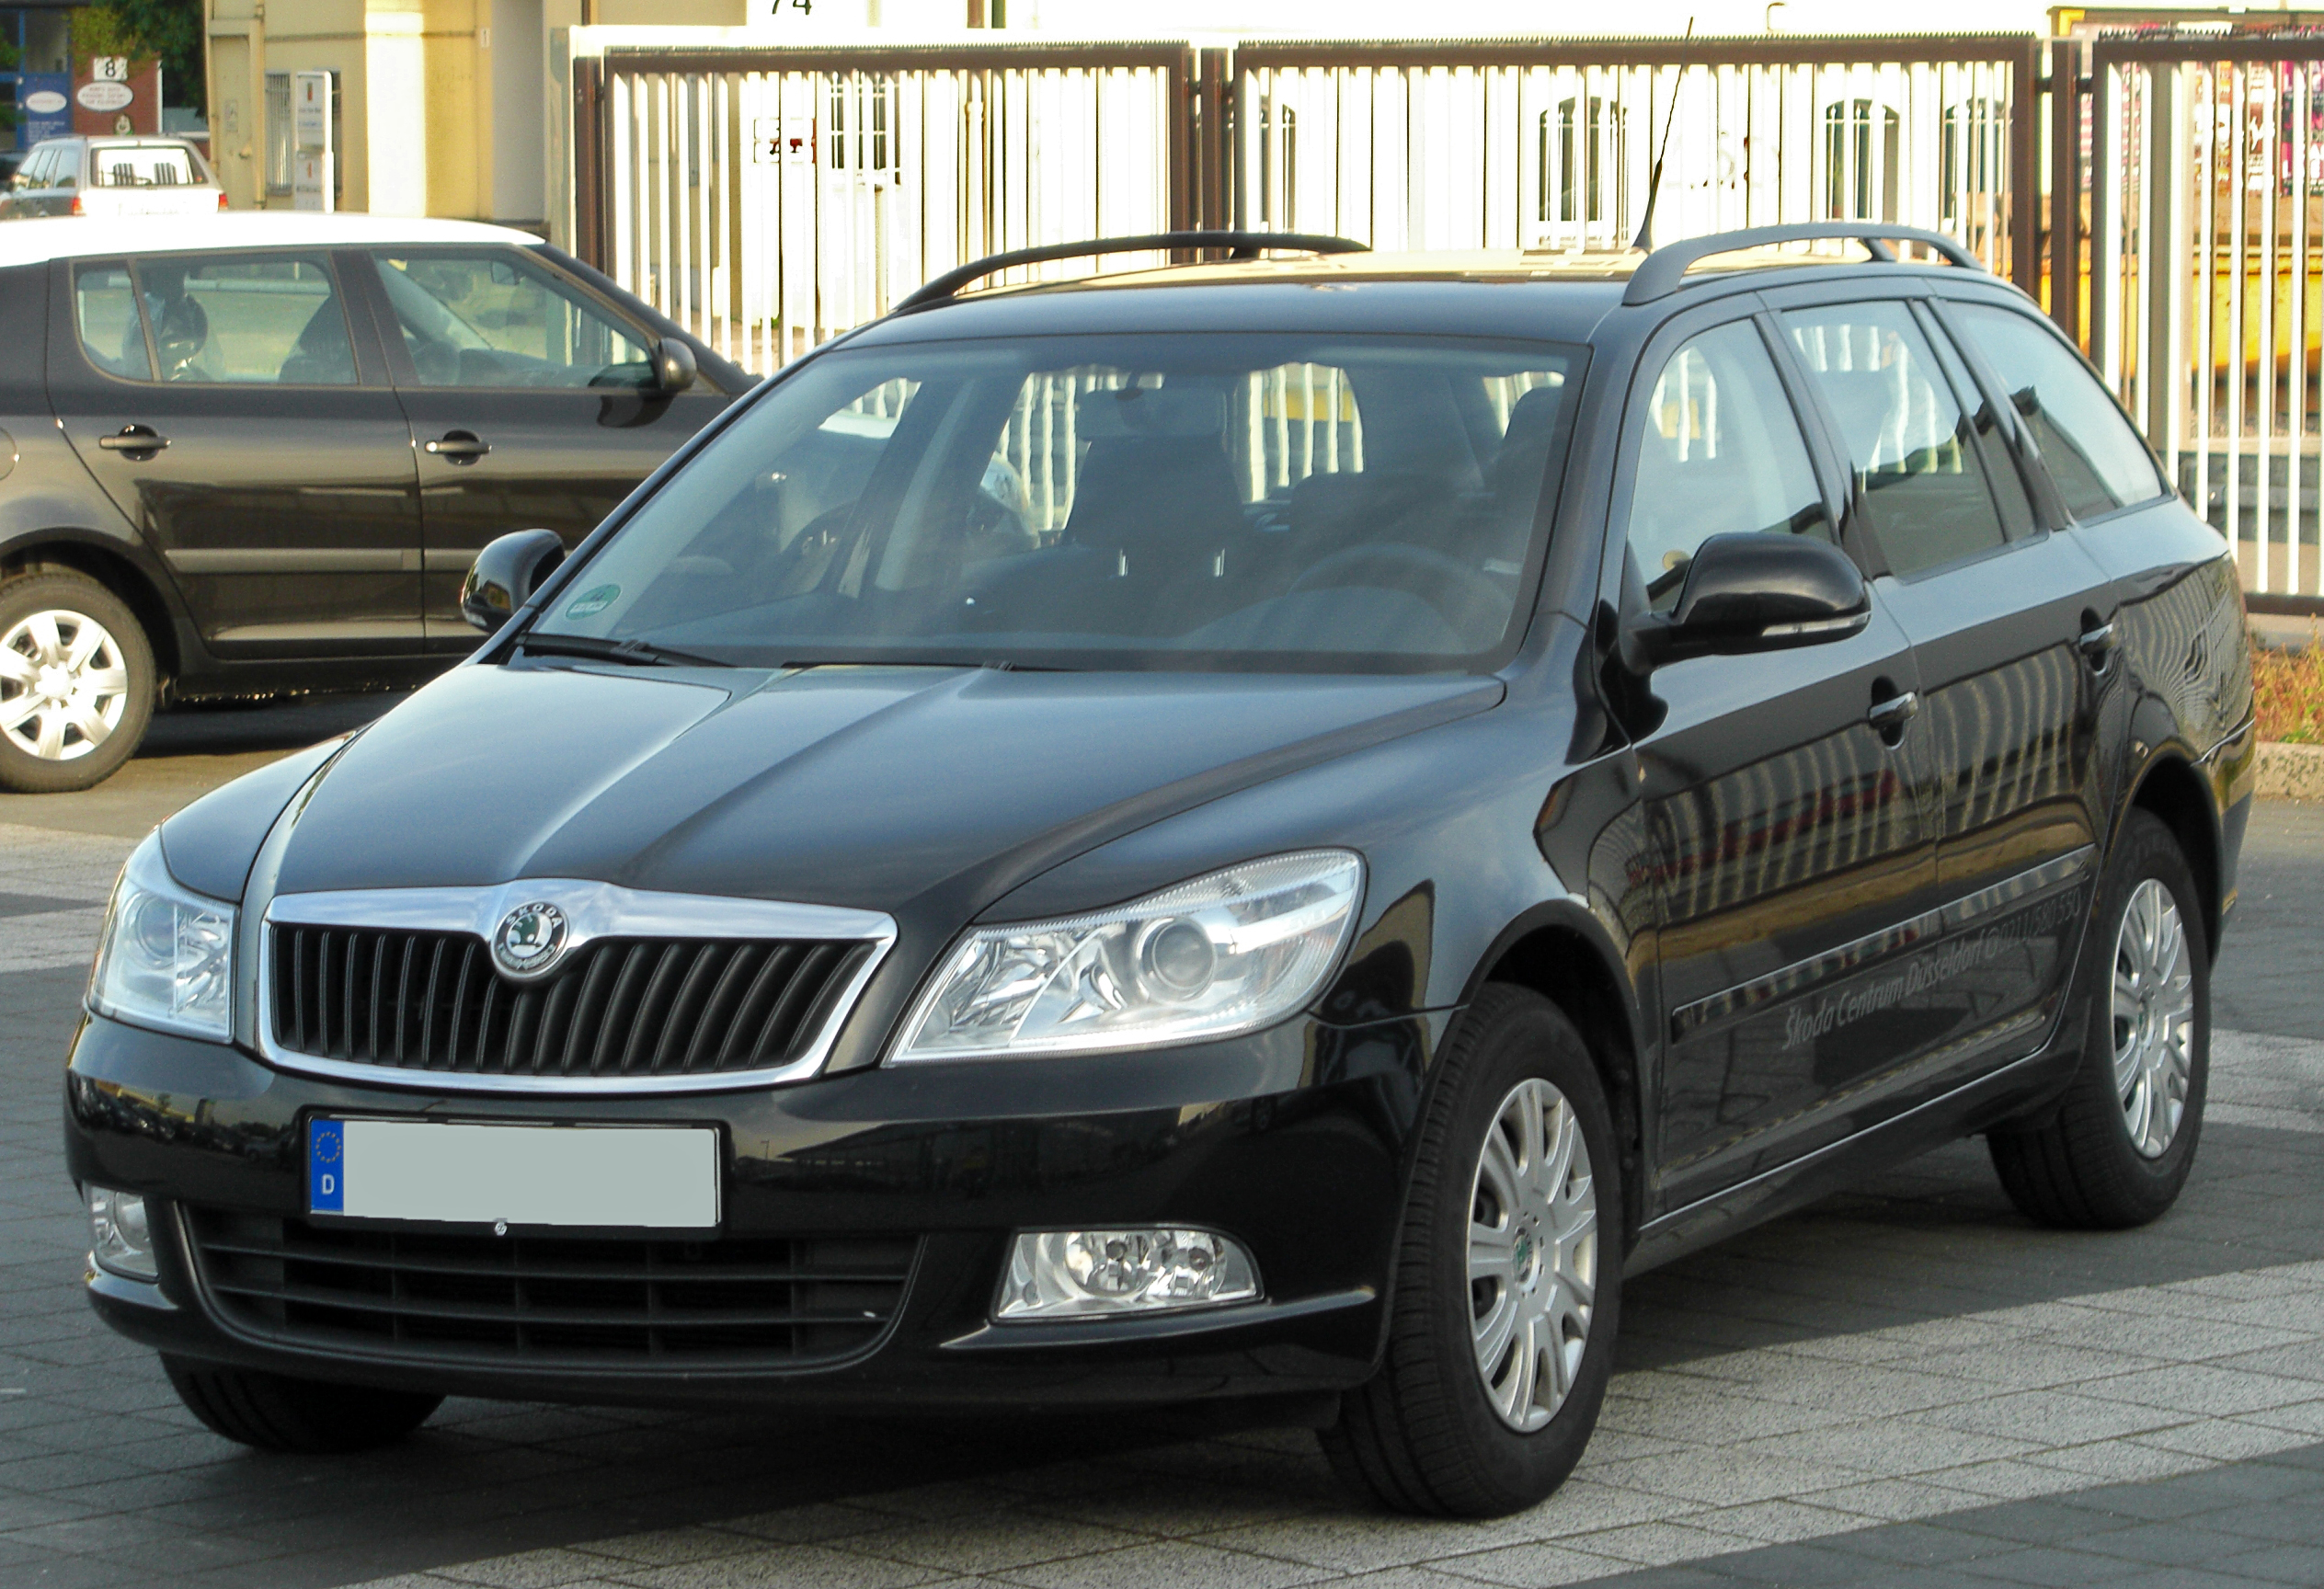 datei skoda octavia ii combi facelift front 1 wikipedia. Black Bedroom Furniture Sets. Home Design Ideas